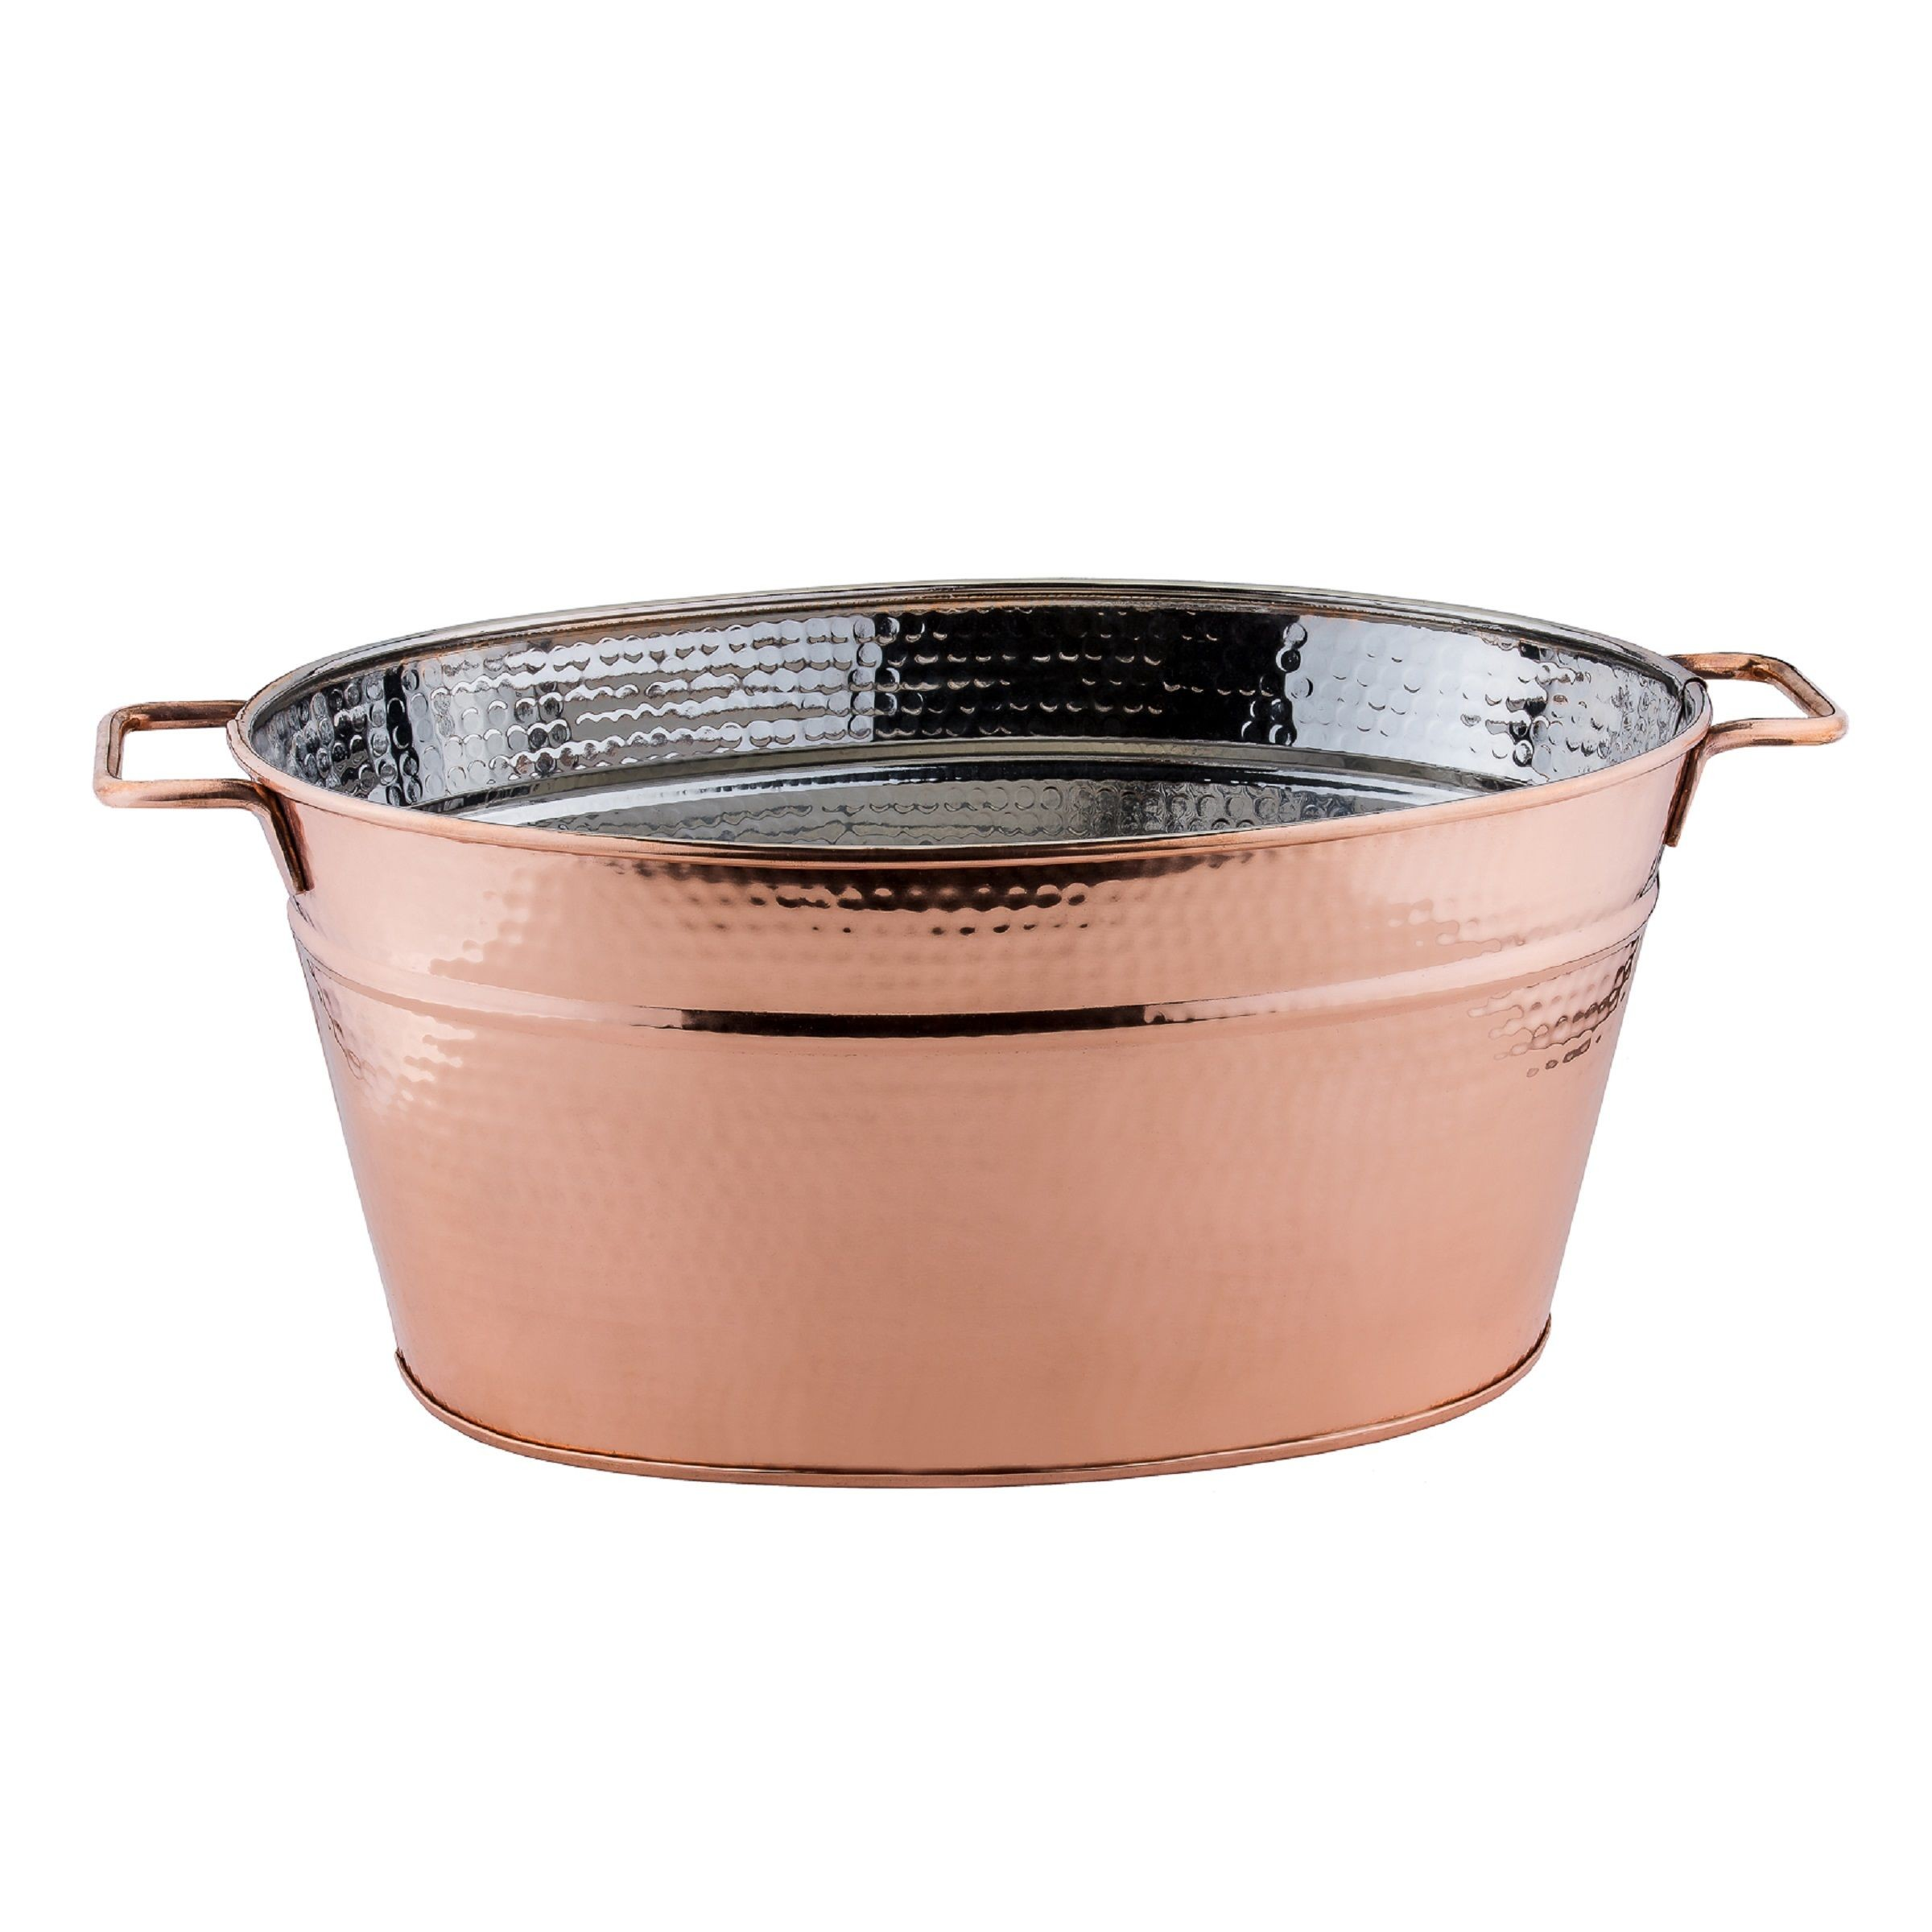 Old Dutch International 1123 Hammered Decor Copper Oval Beverage Tub, 5 3/4 Gallon